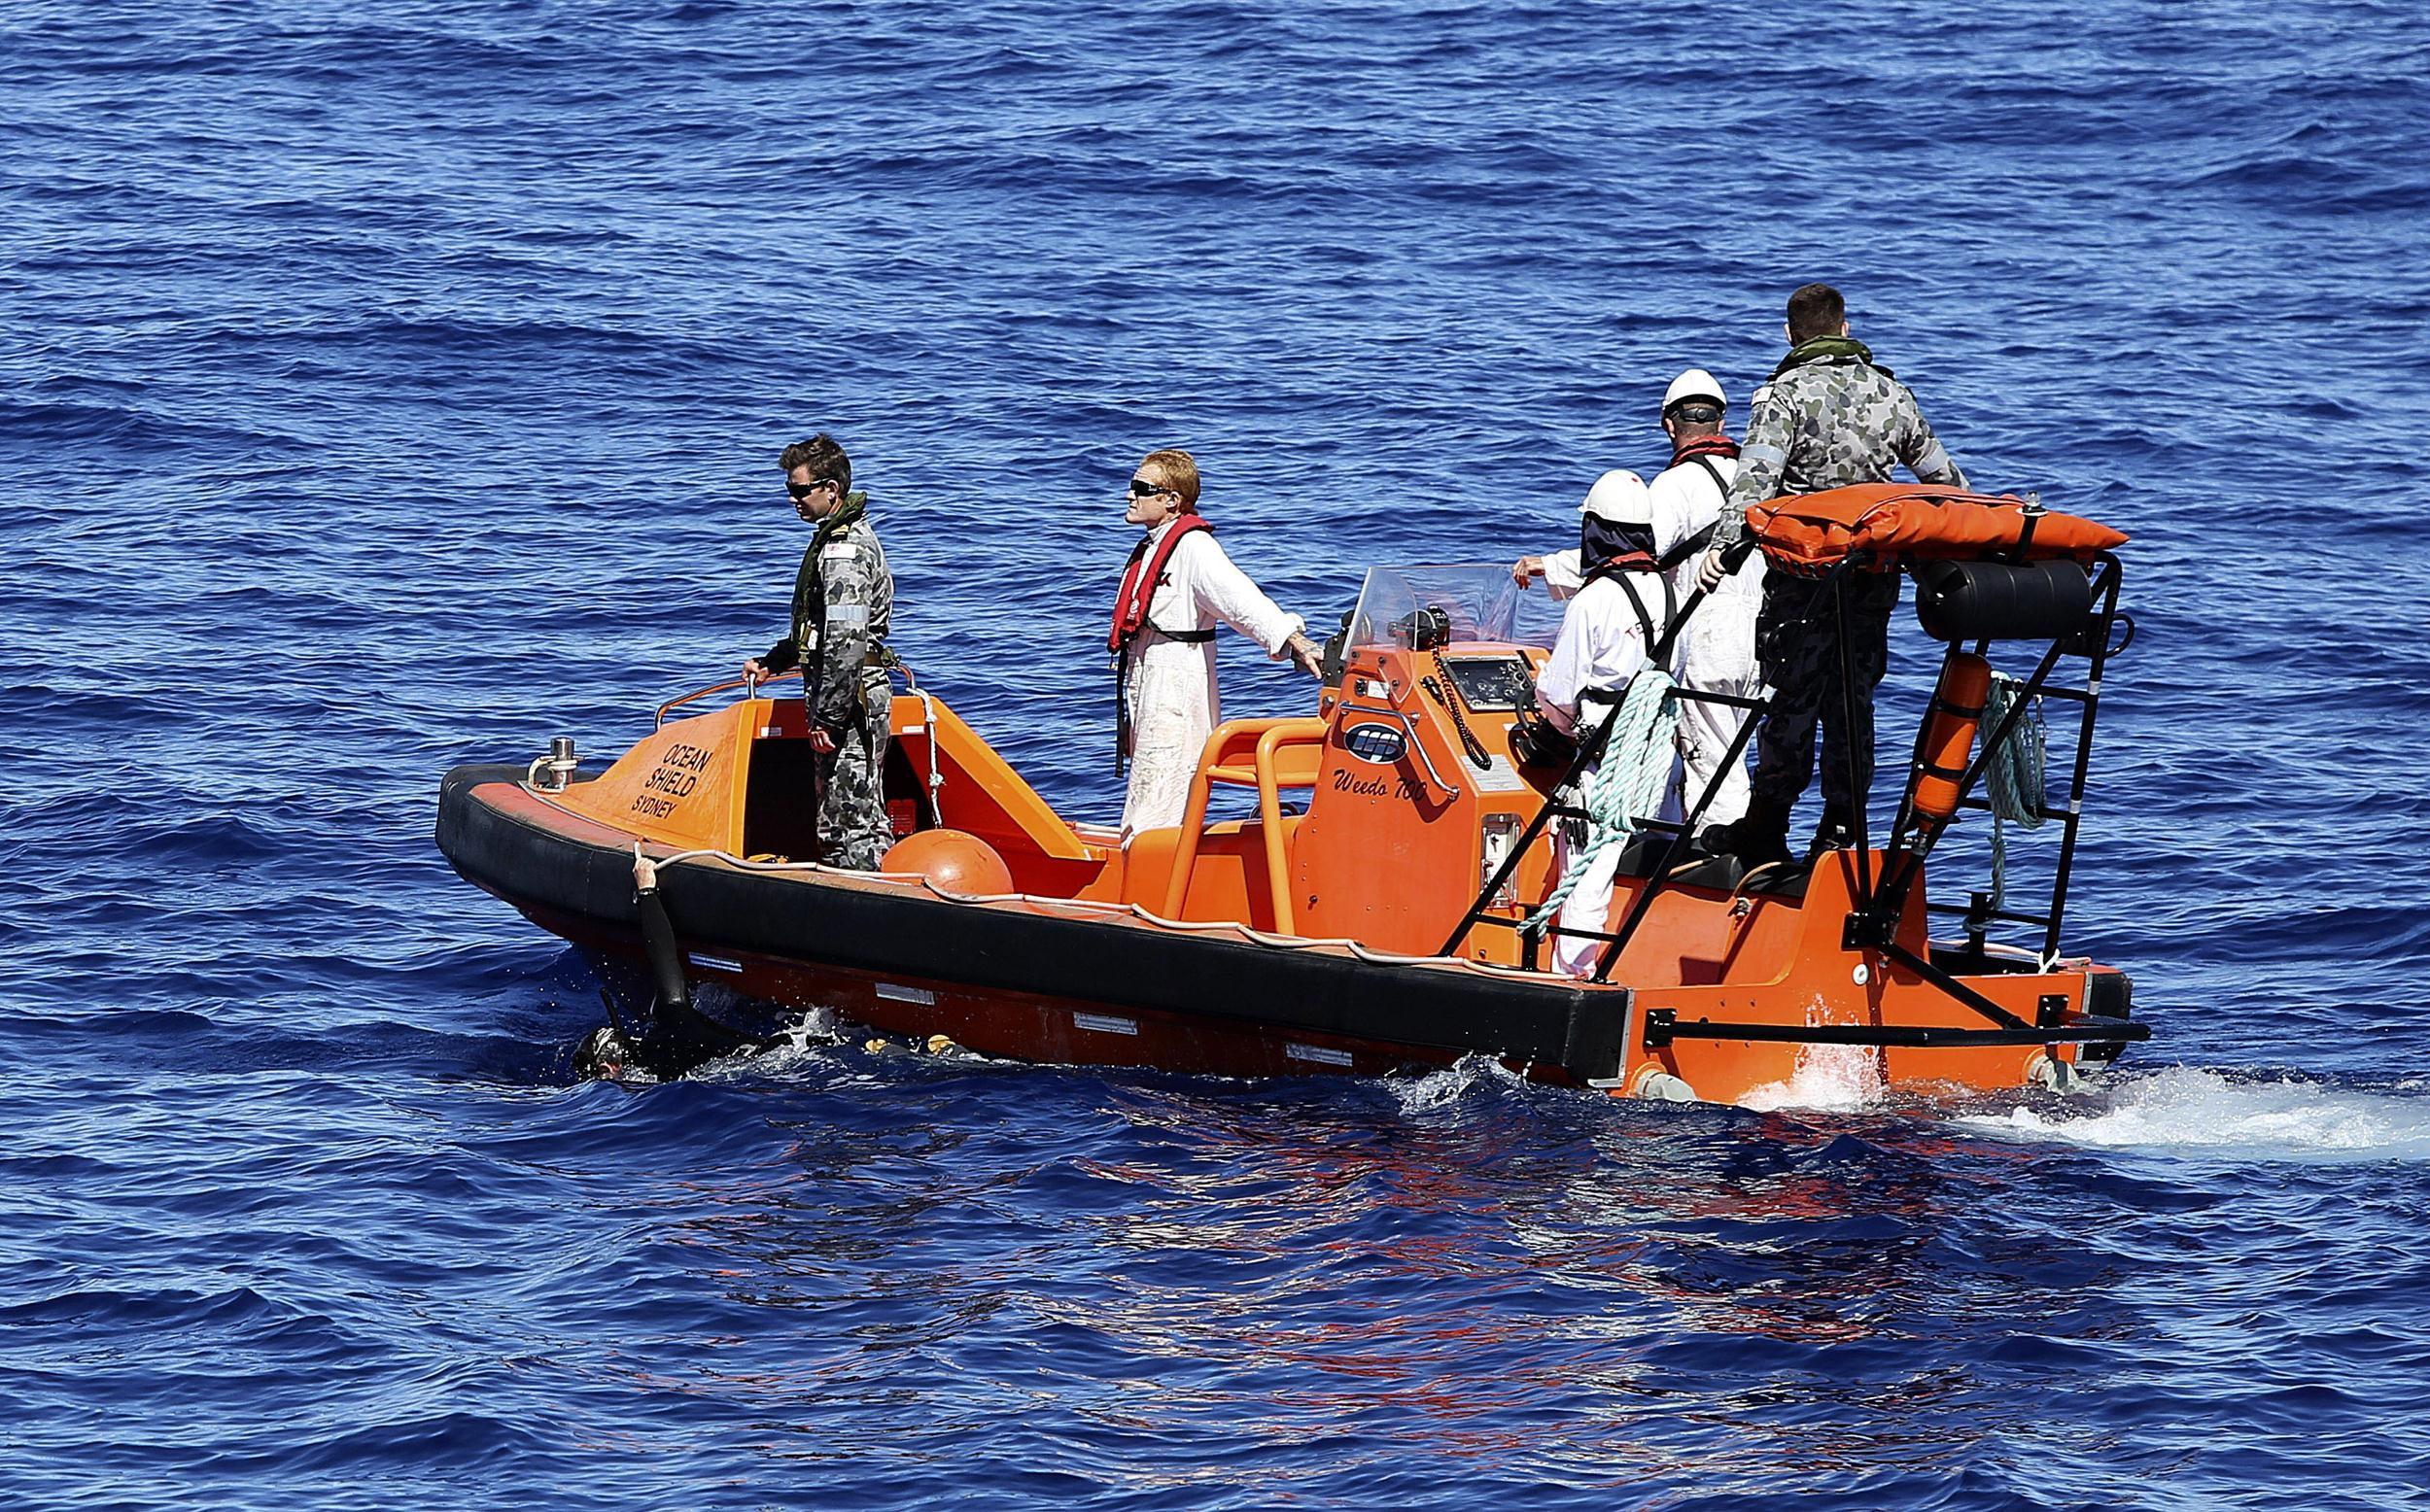 Image: A fast response craft manned by members from the Australian Defense's ship Ocean Shield